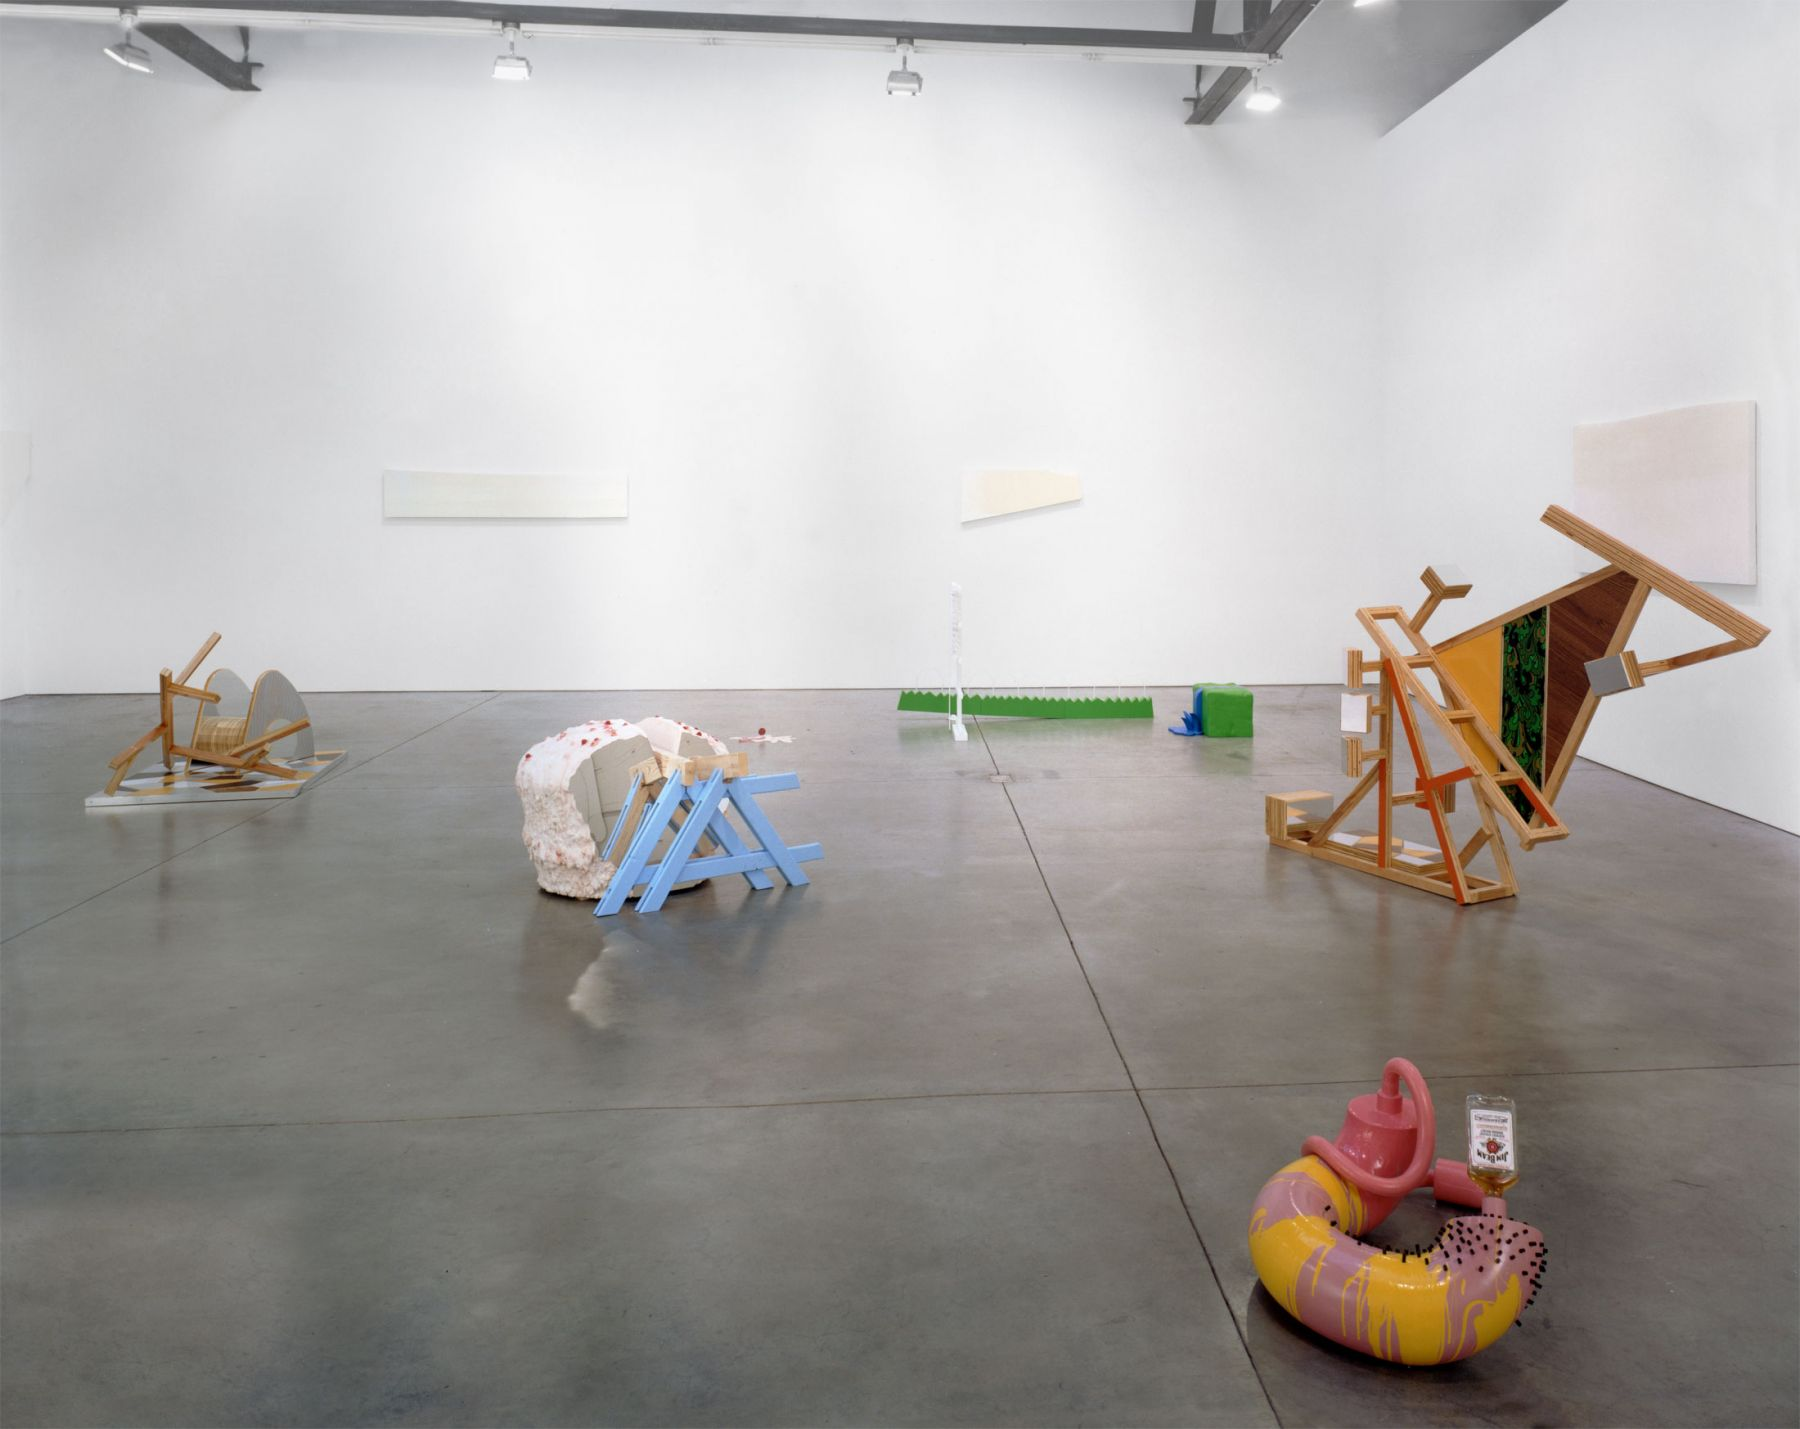 New Slang: Emerging Voices in Sculpture, Installation view